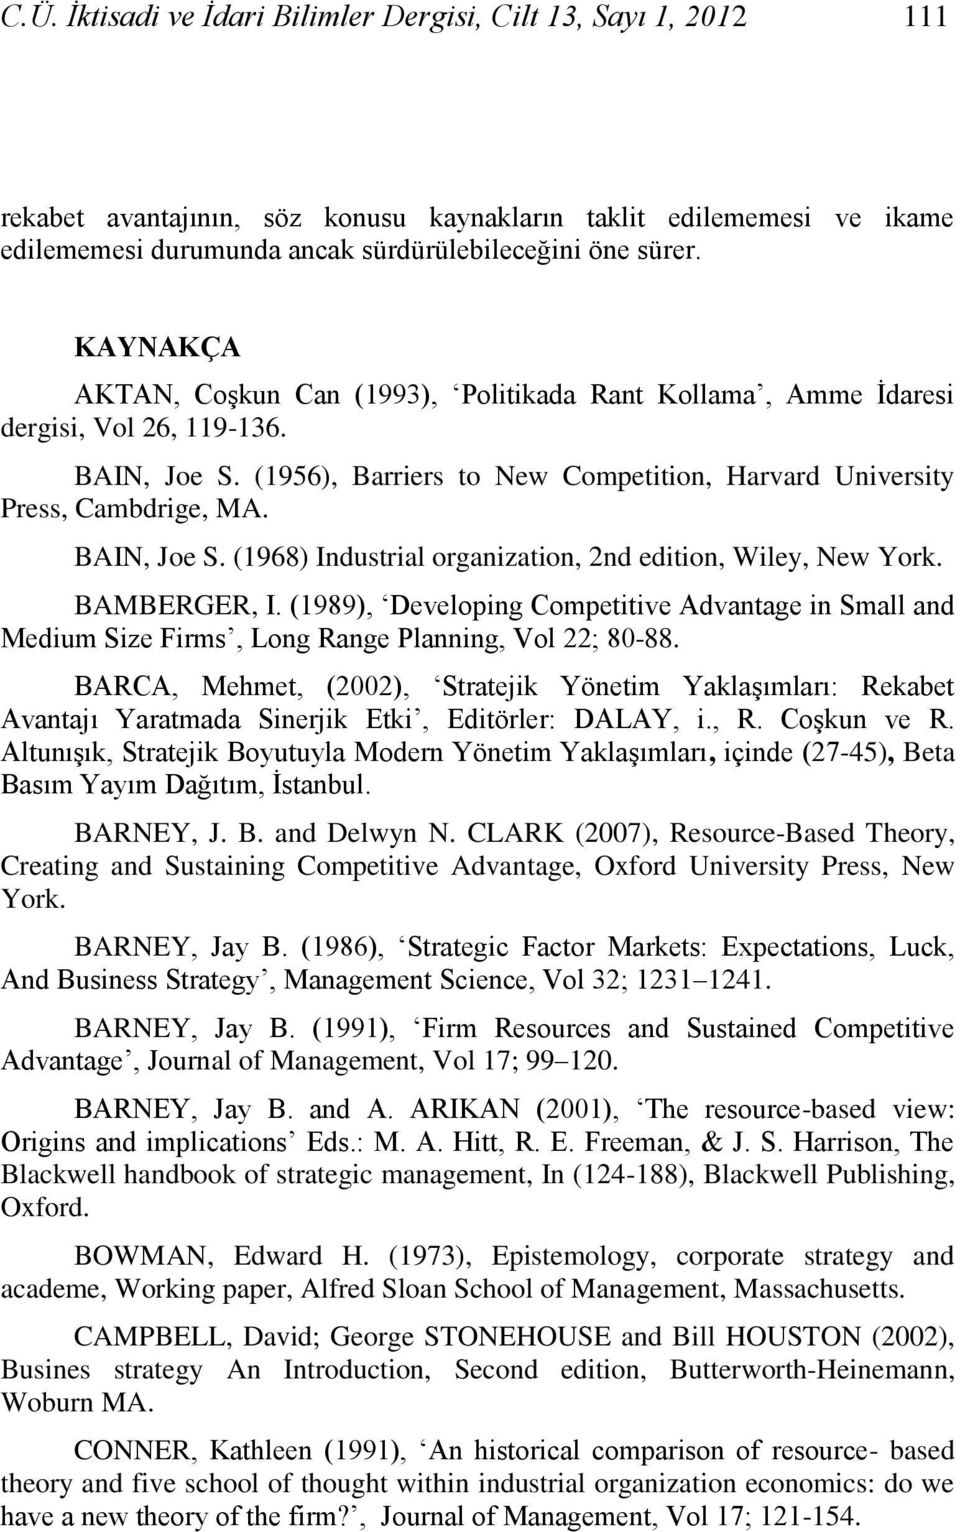 BAIN, Joe S. (1968) Industrial organization, 2nd edition, Wiley, New York. BAMBERGER, I. (1989), Developing Competitive Advantage in Small and Medium Size Firms, Long Range Planning, Vol 22; 80-88.